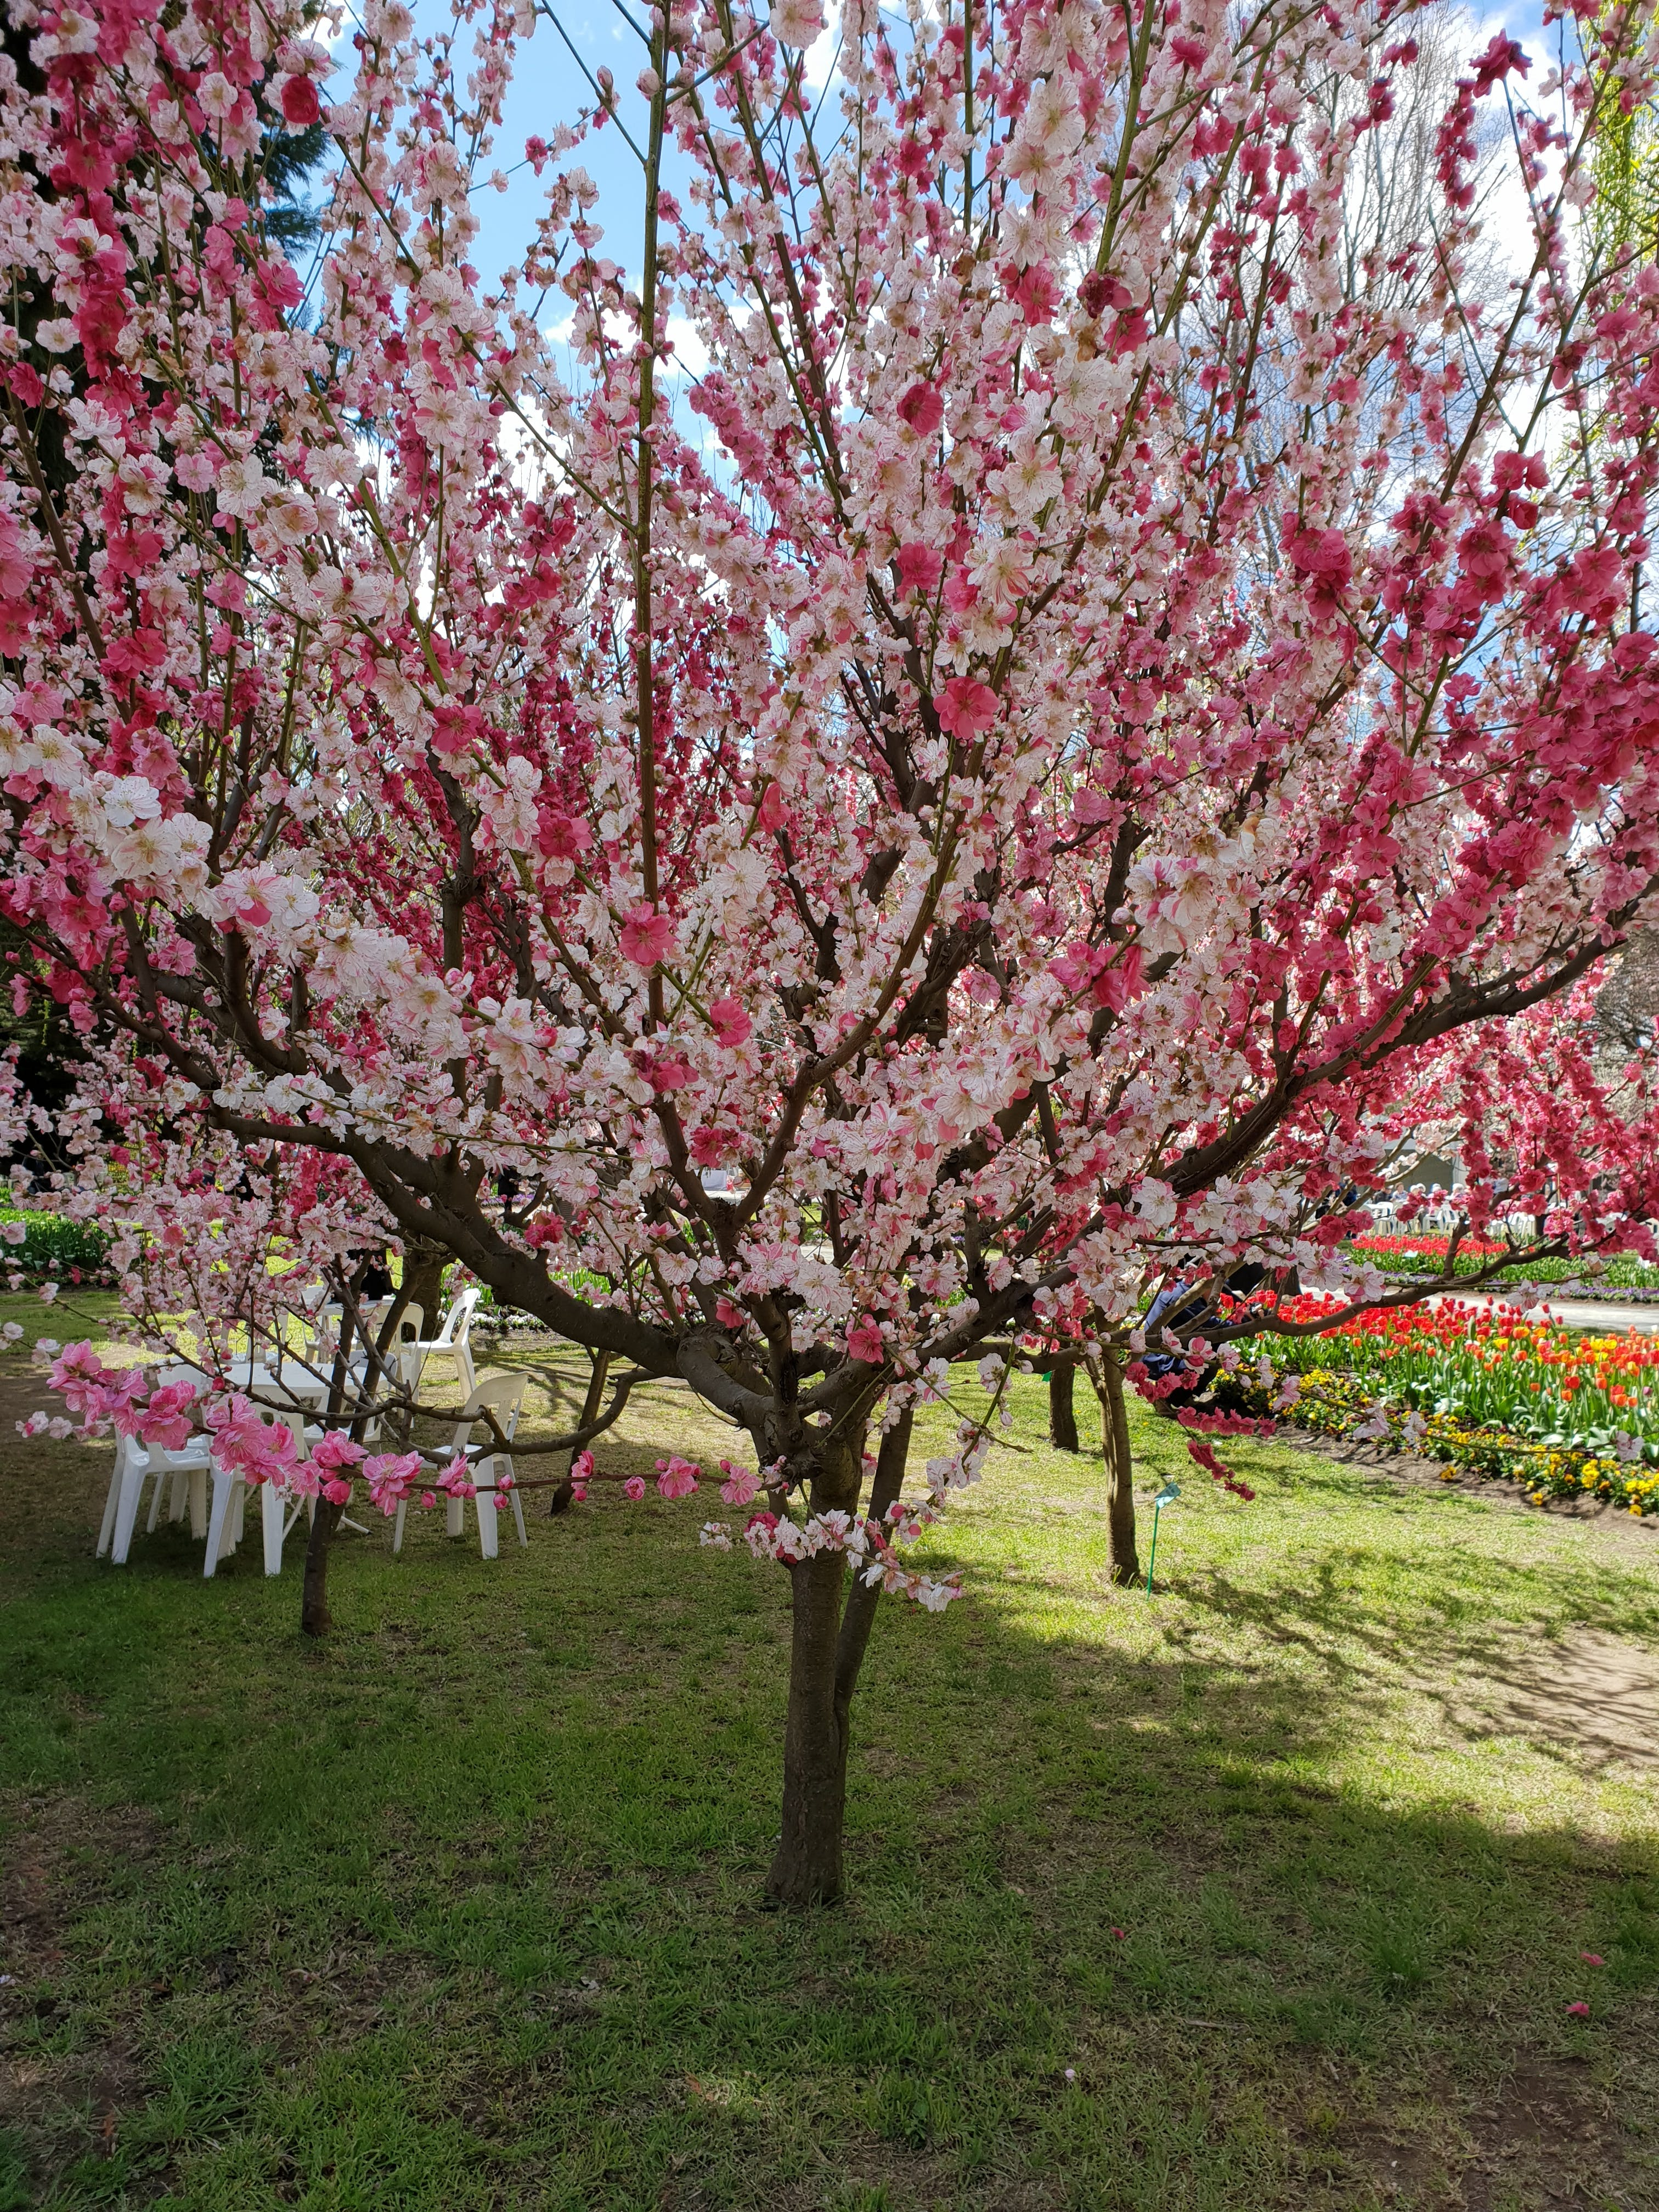 Free stock photo of blossoms, cherry blossoms, spring, tree